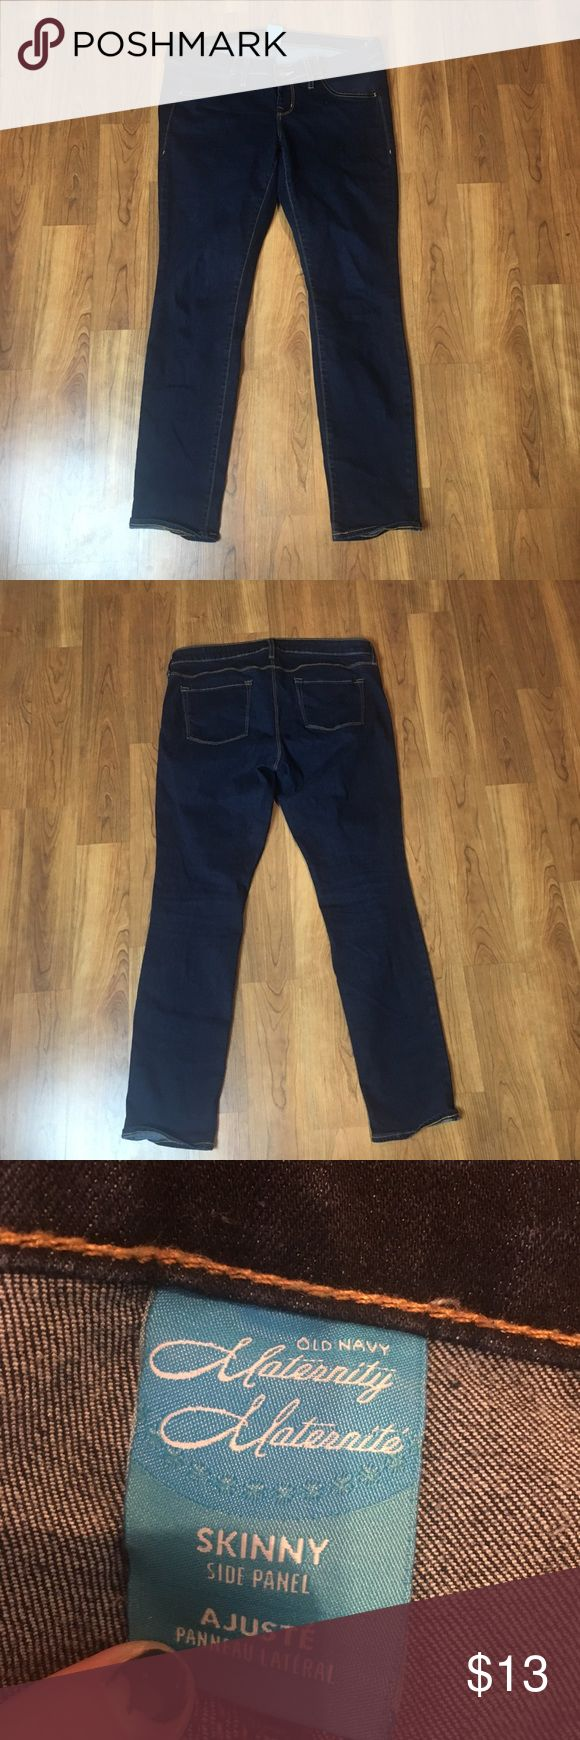 Maternity jeans Maternity jeans from old navy size 10 in good condition in the style skinny Old Navy Jeans Skinny